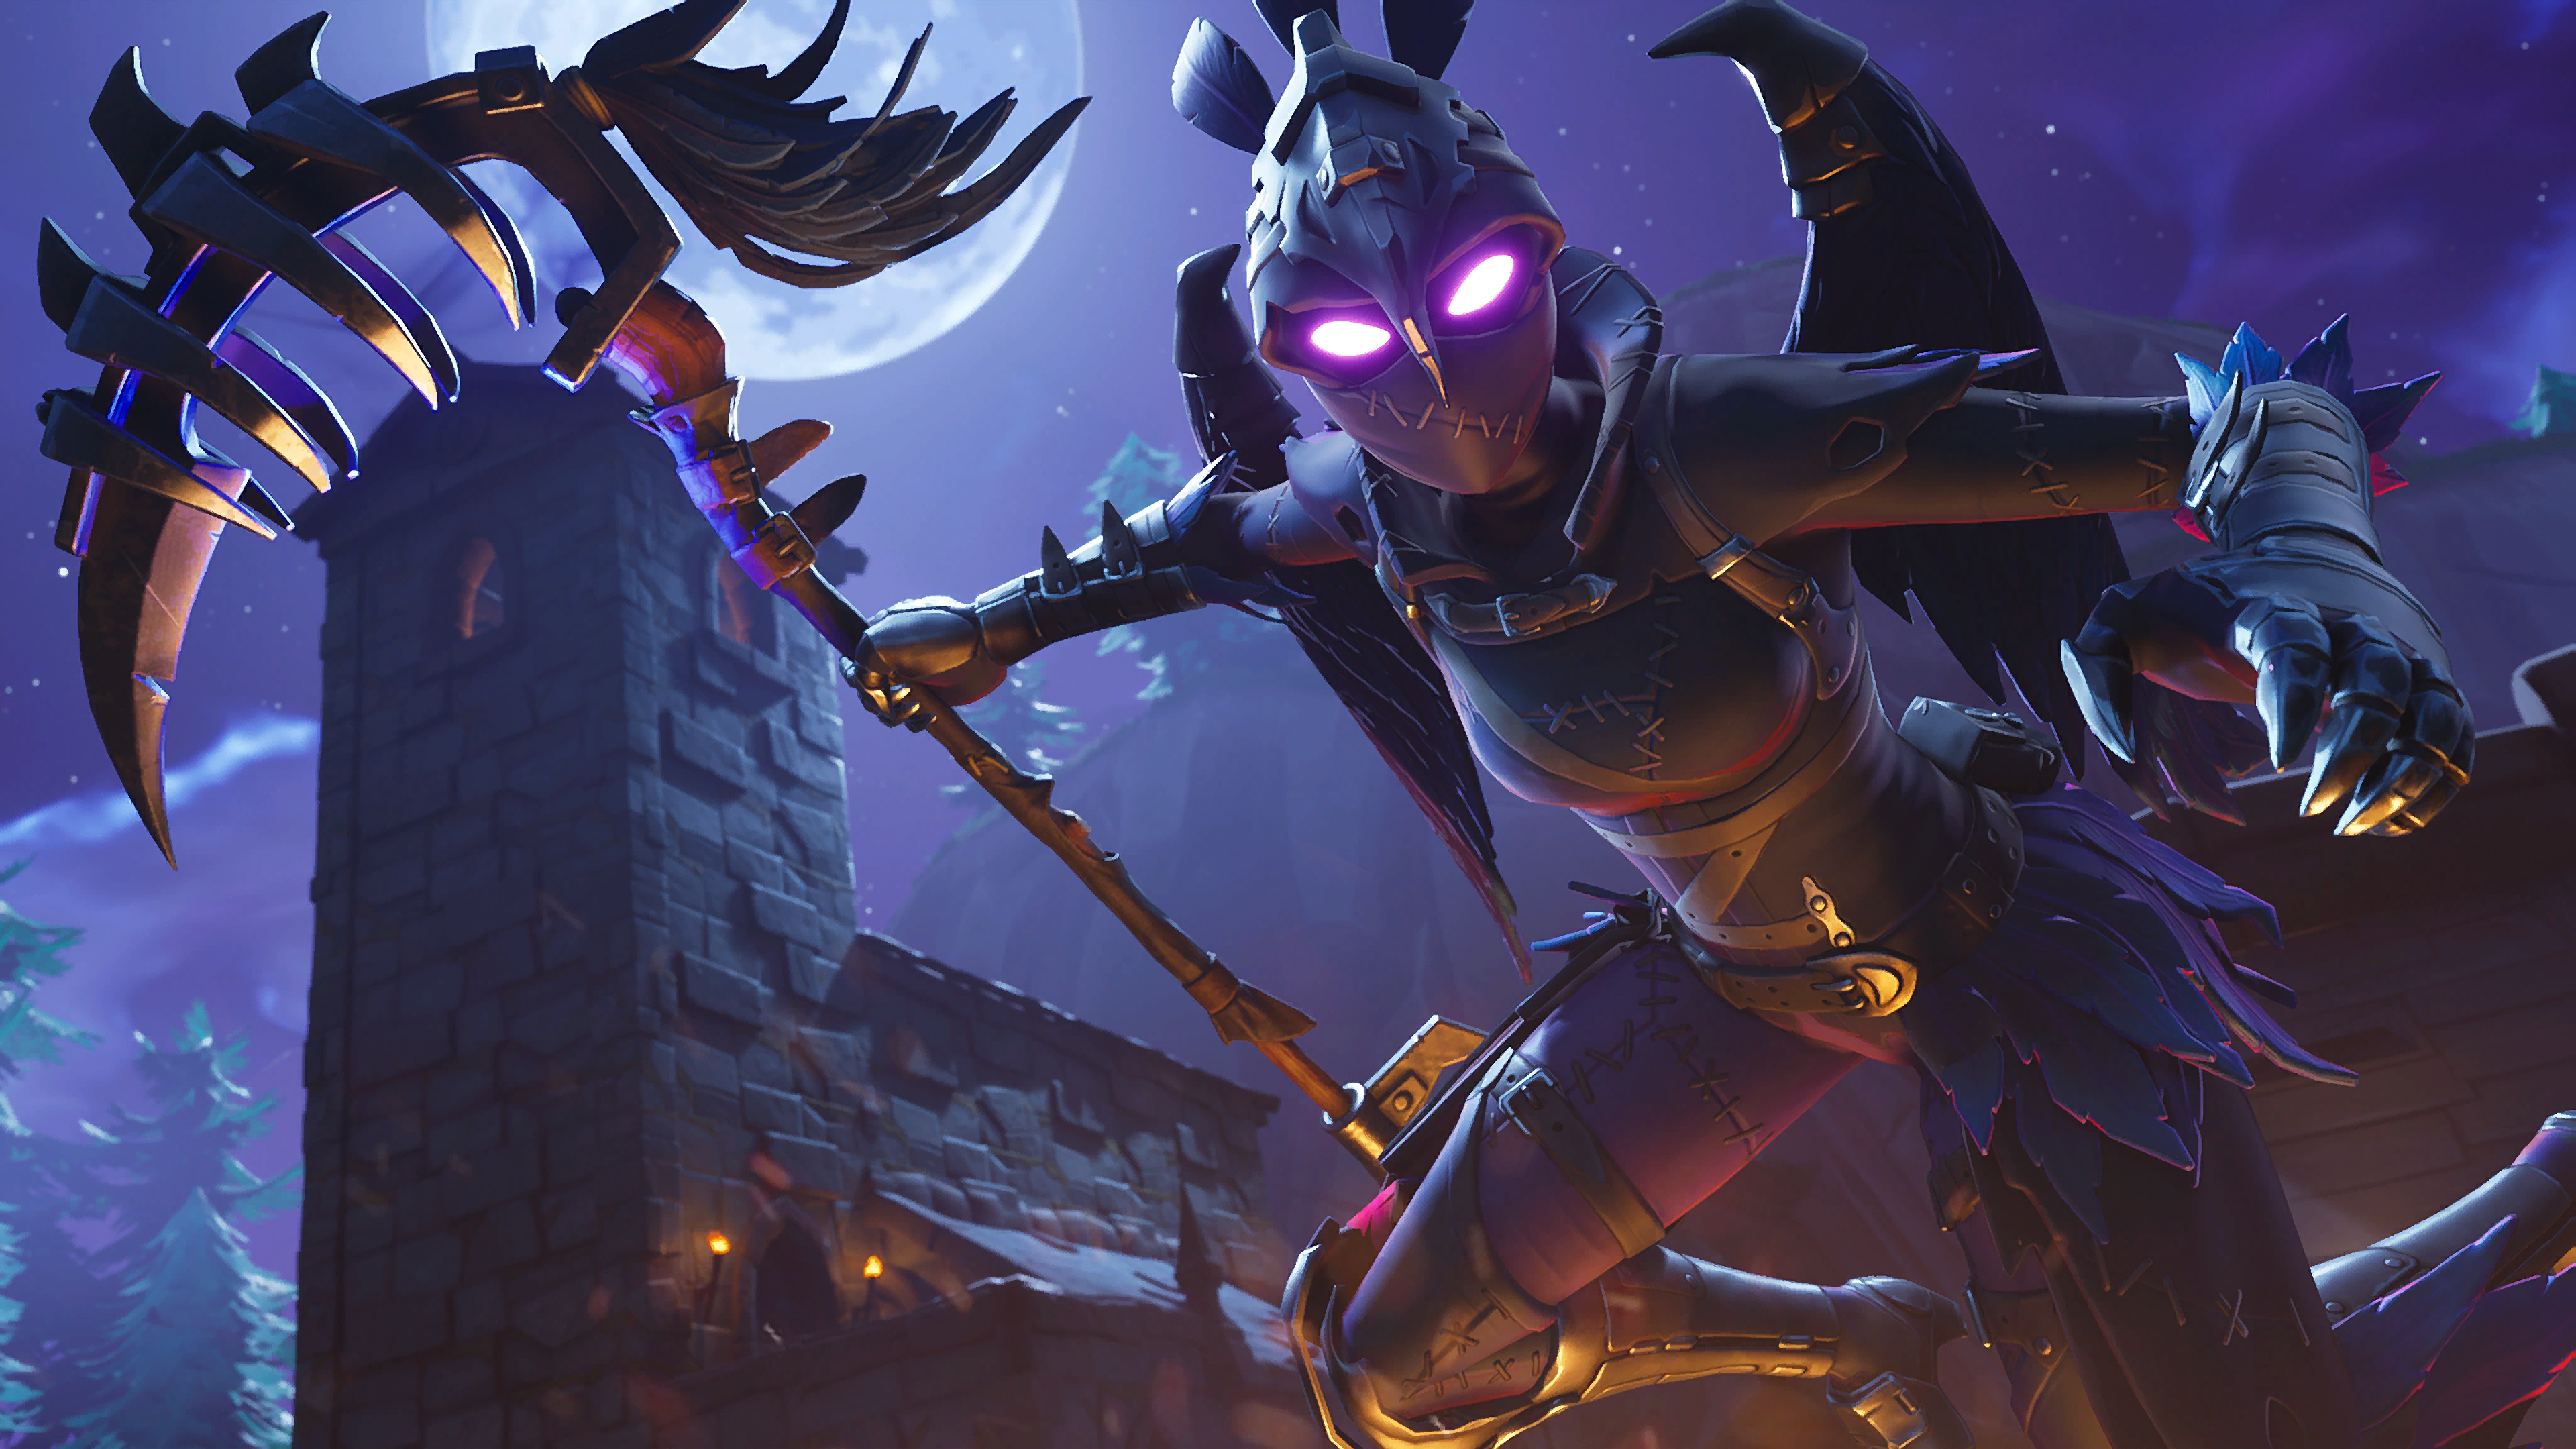 Ravage fortnite battle royale season 6 4k hd games 4k - 4k fortnite wallpaper ...